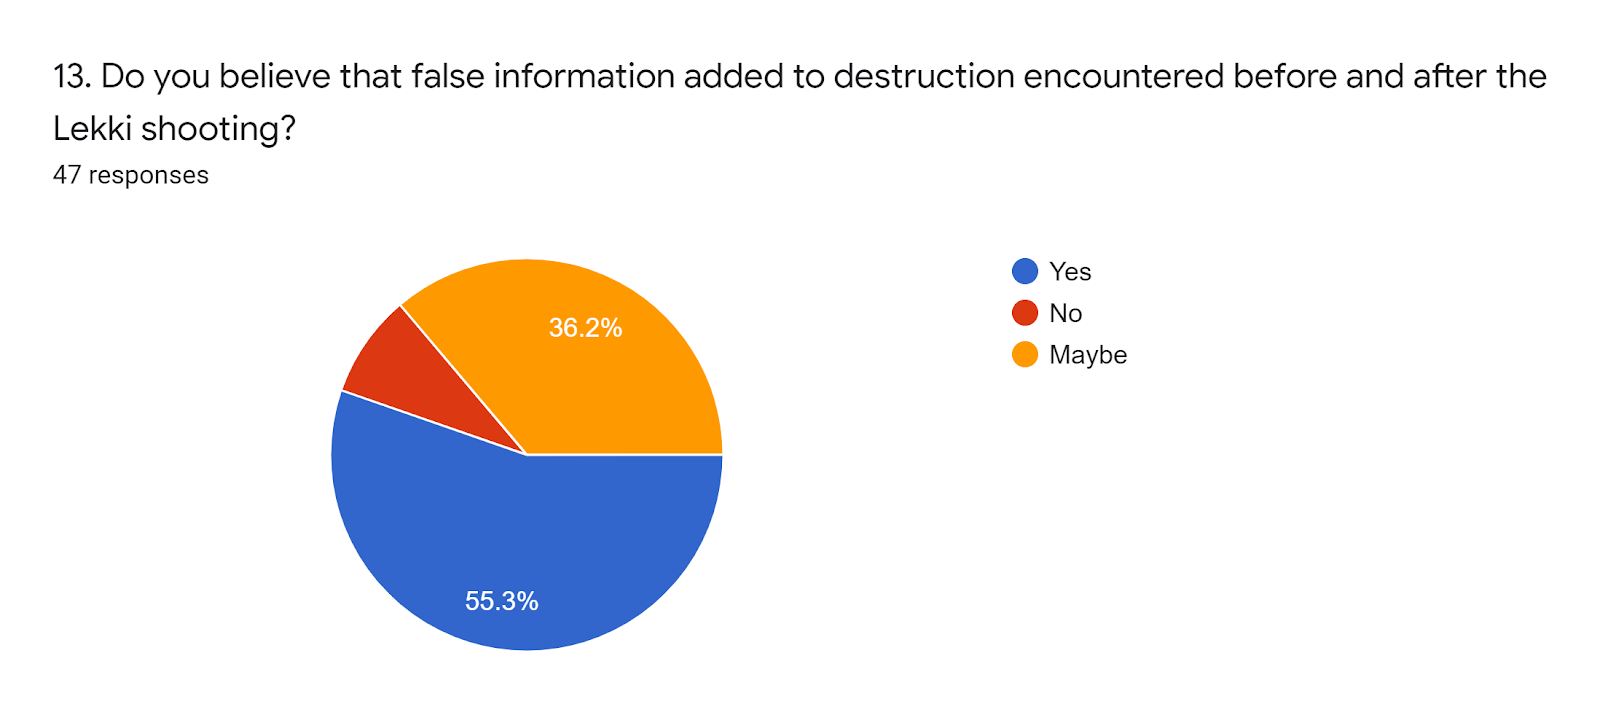 Forms response chart. Question title: 13. Do you believe that false information added to destruction encountered before and after the Lekki shooting?. Number of responses: 47 responses.